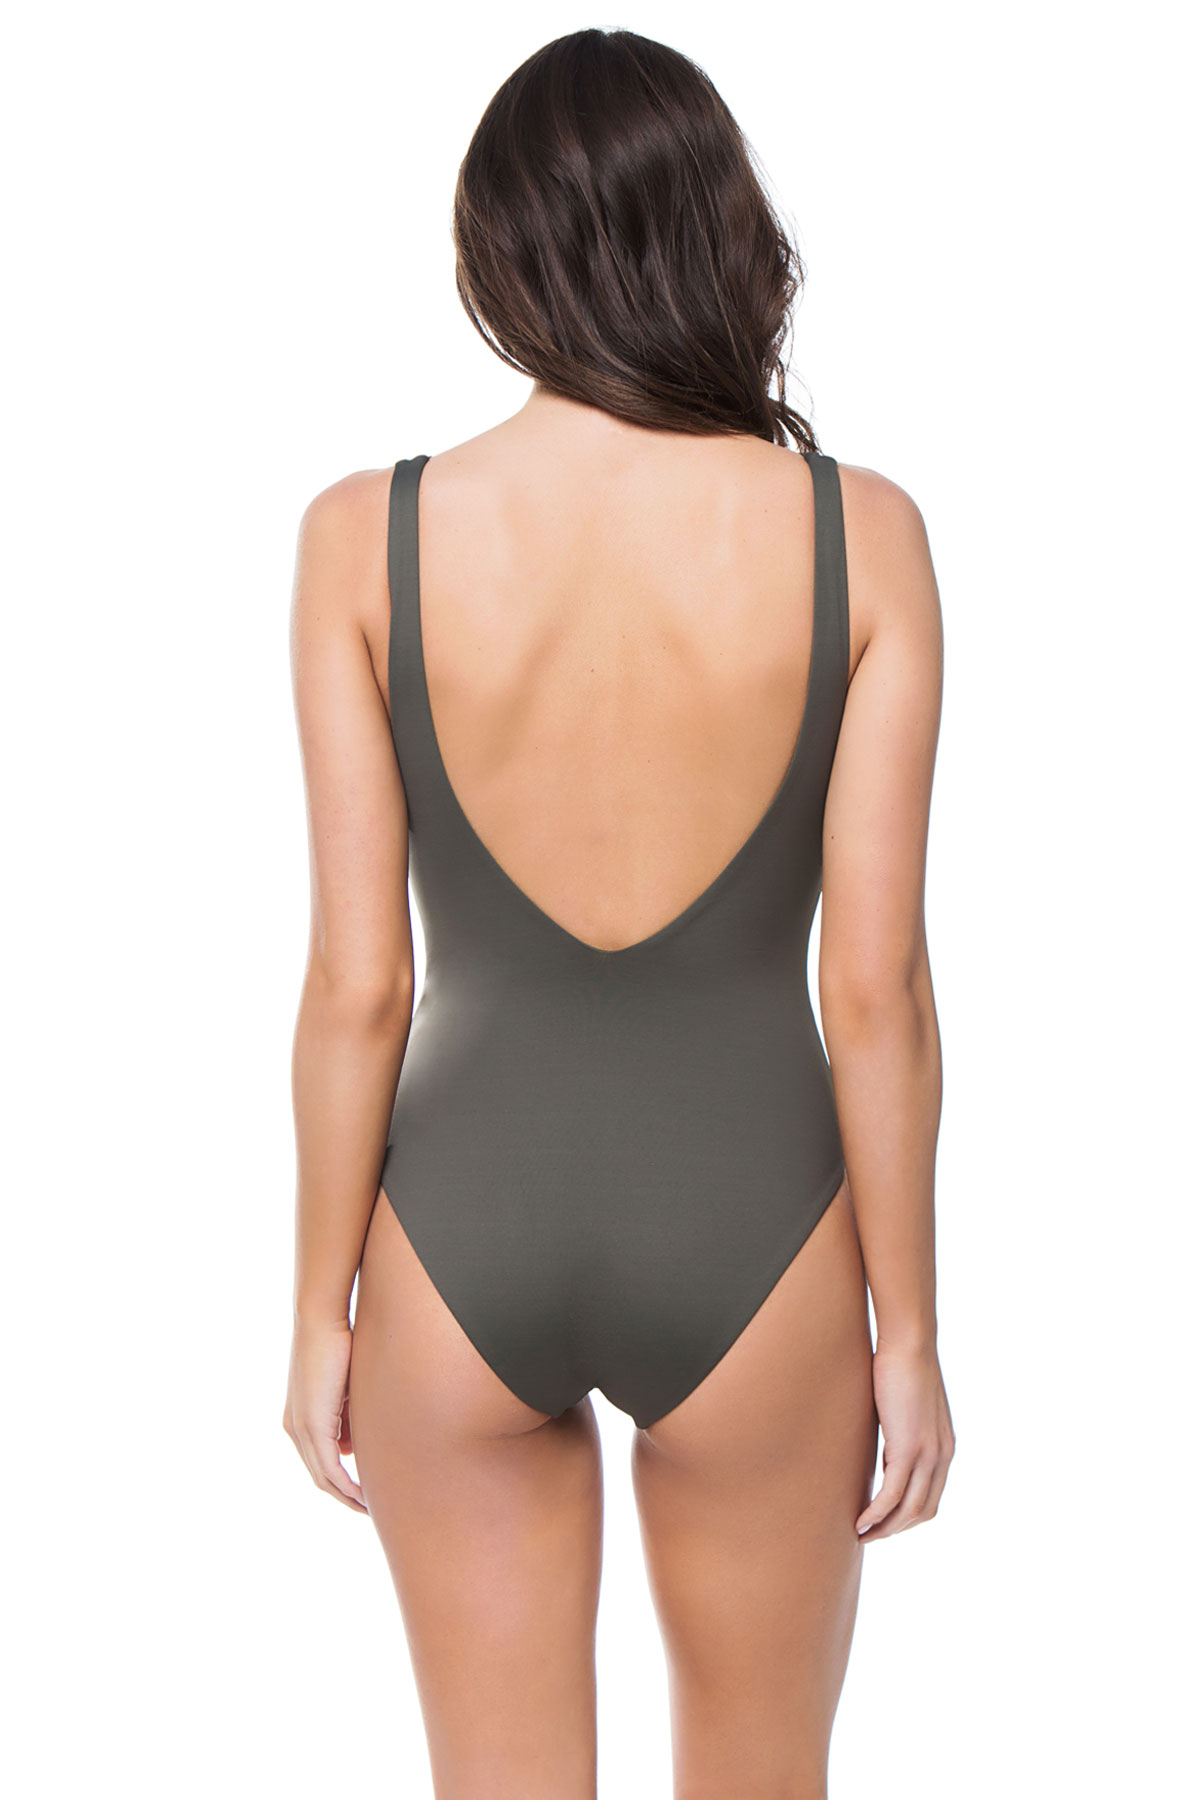 Plunge Over The Shoulder One Piece Swimsuit - Deep Khaki 5